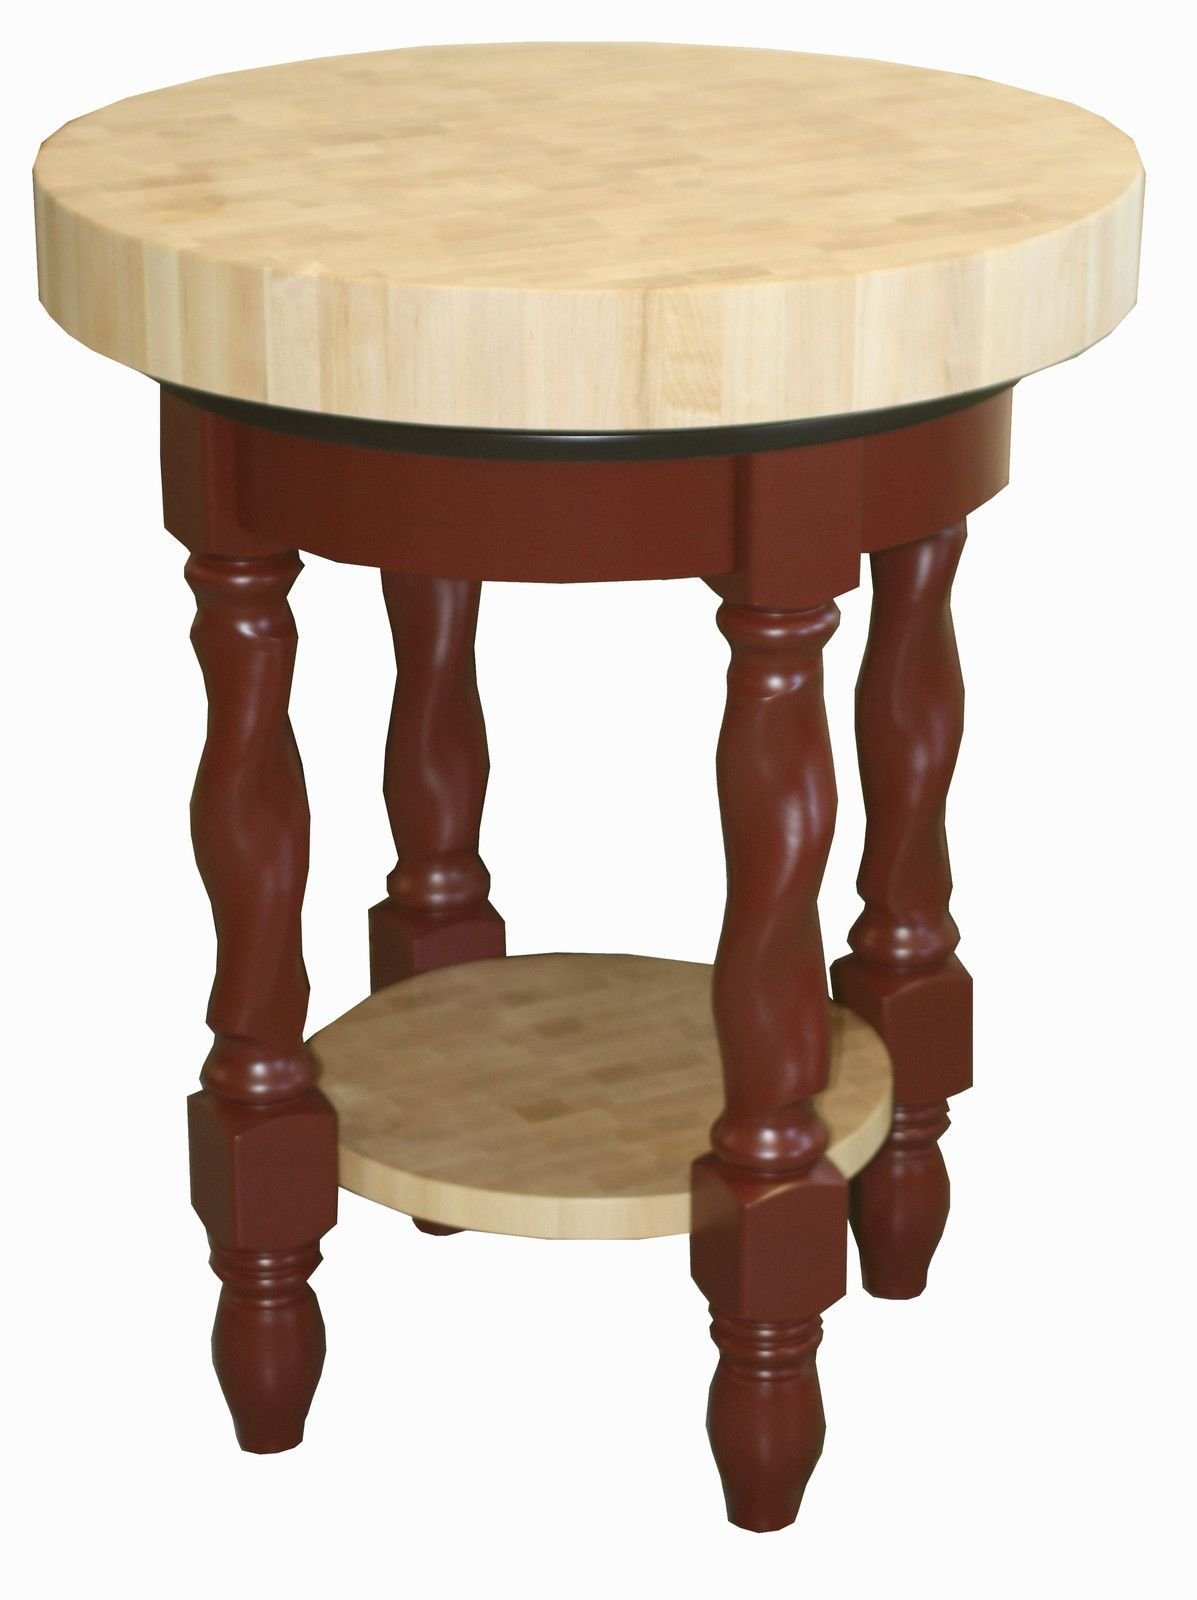 Amish butcher block kitchen island solid wood round snack bar table